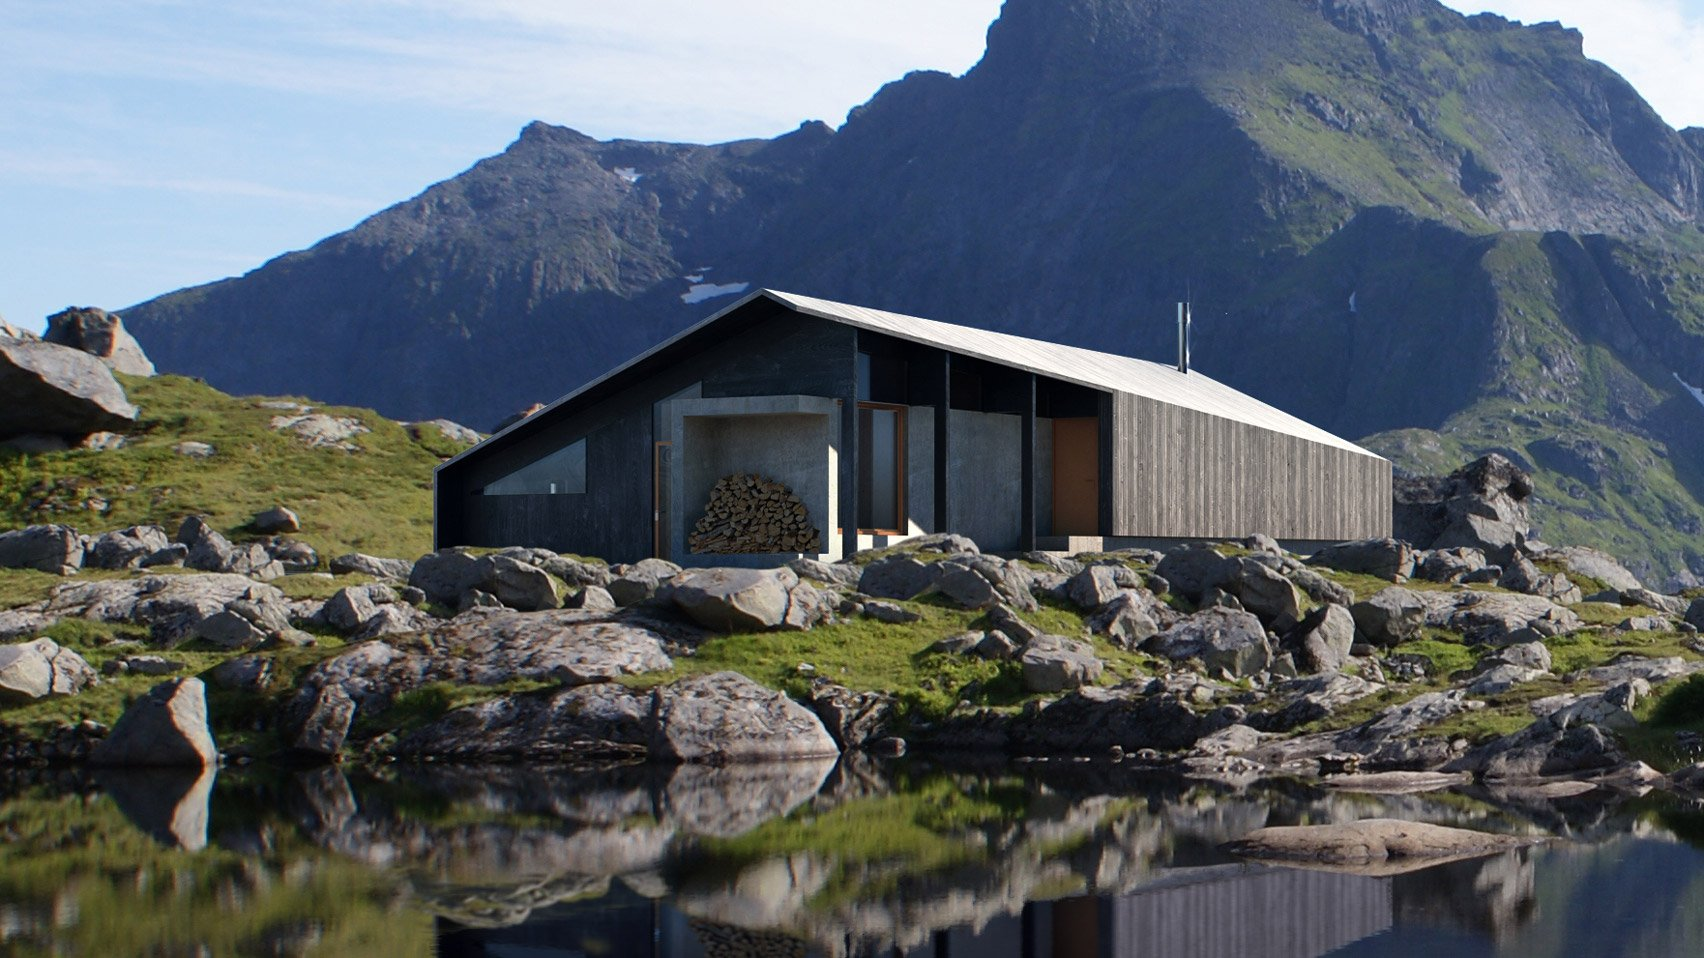 Snøhetta's prefab Gapahuk cabin references a traditional Norwegian